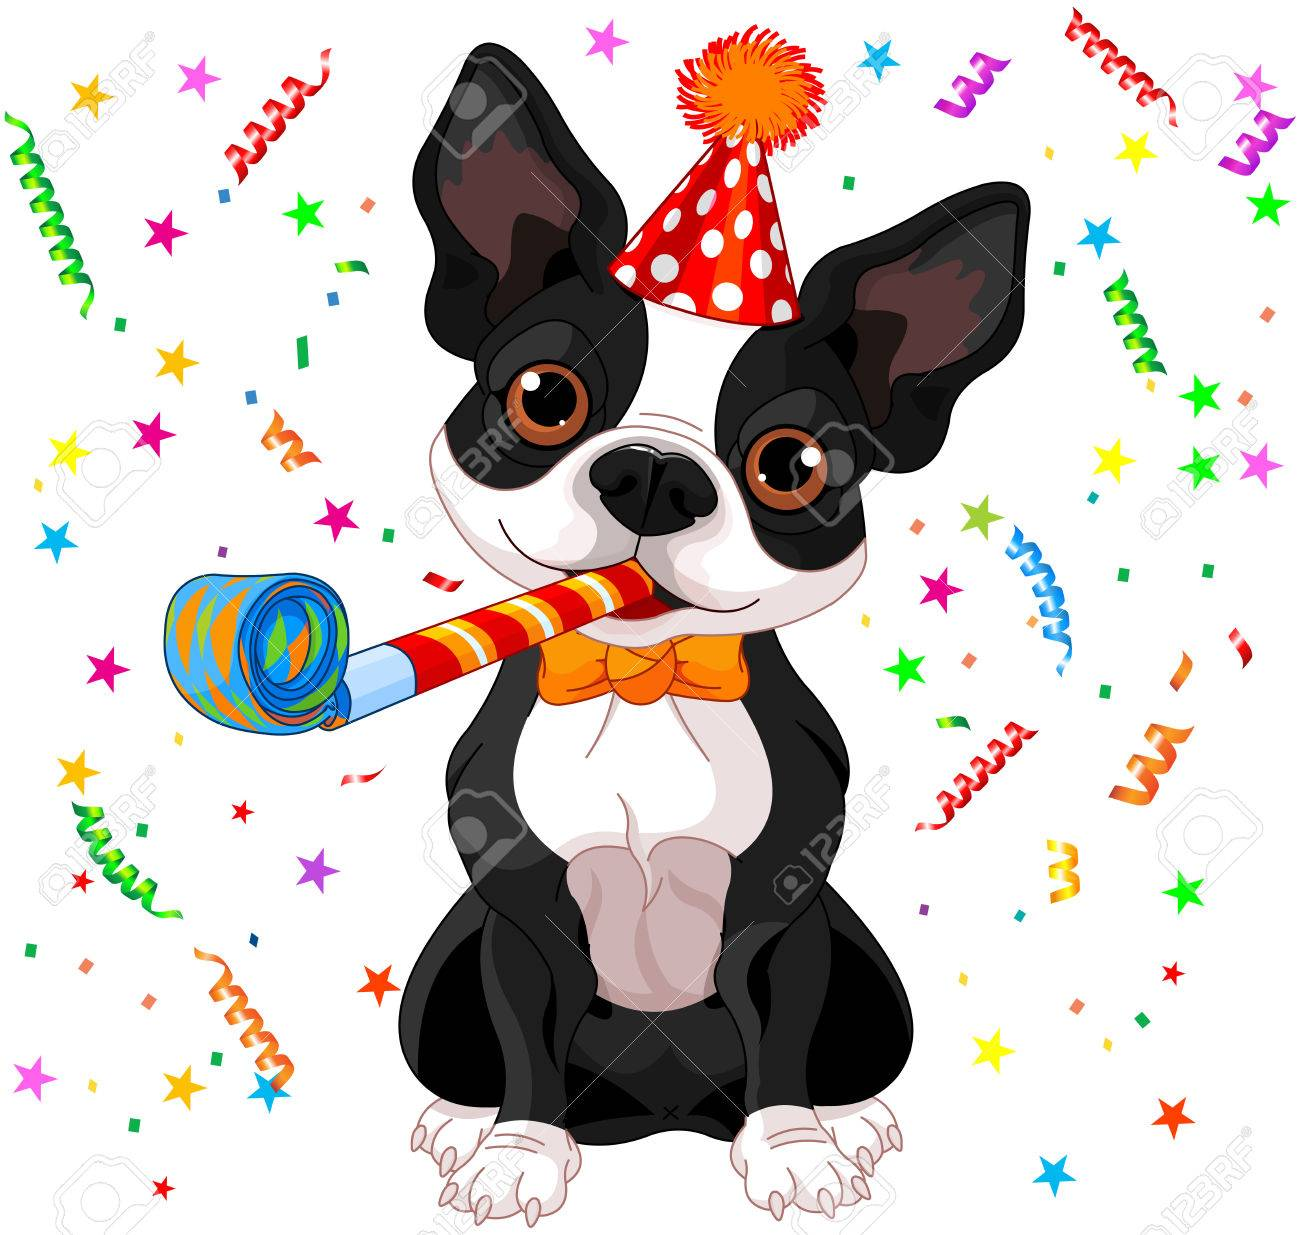 Désherbant non-toxique: conseils? - Page 2 35588778-illustration-of-cute-boston-terrier-celebrating